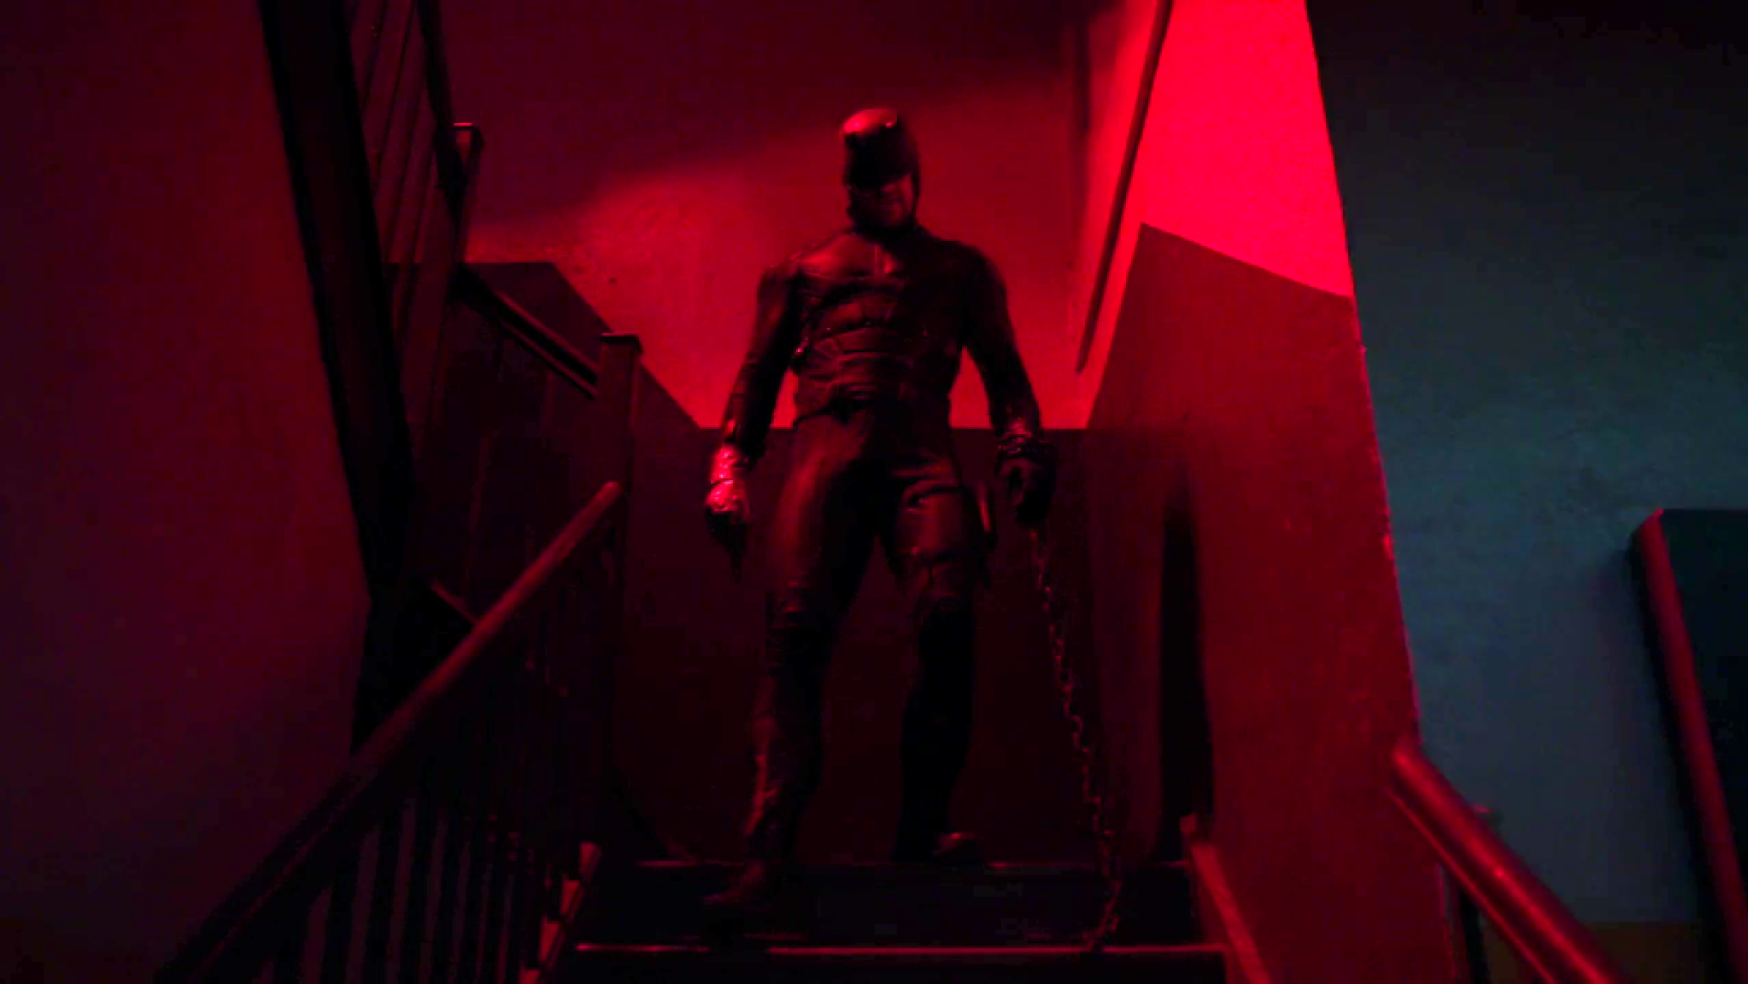 Daredevil Season 2 Trailer Offers First Full Look At The Punisher